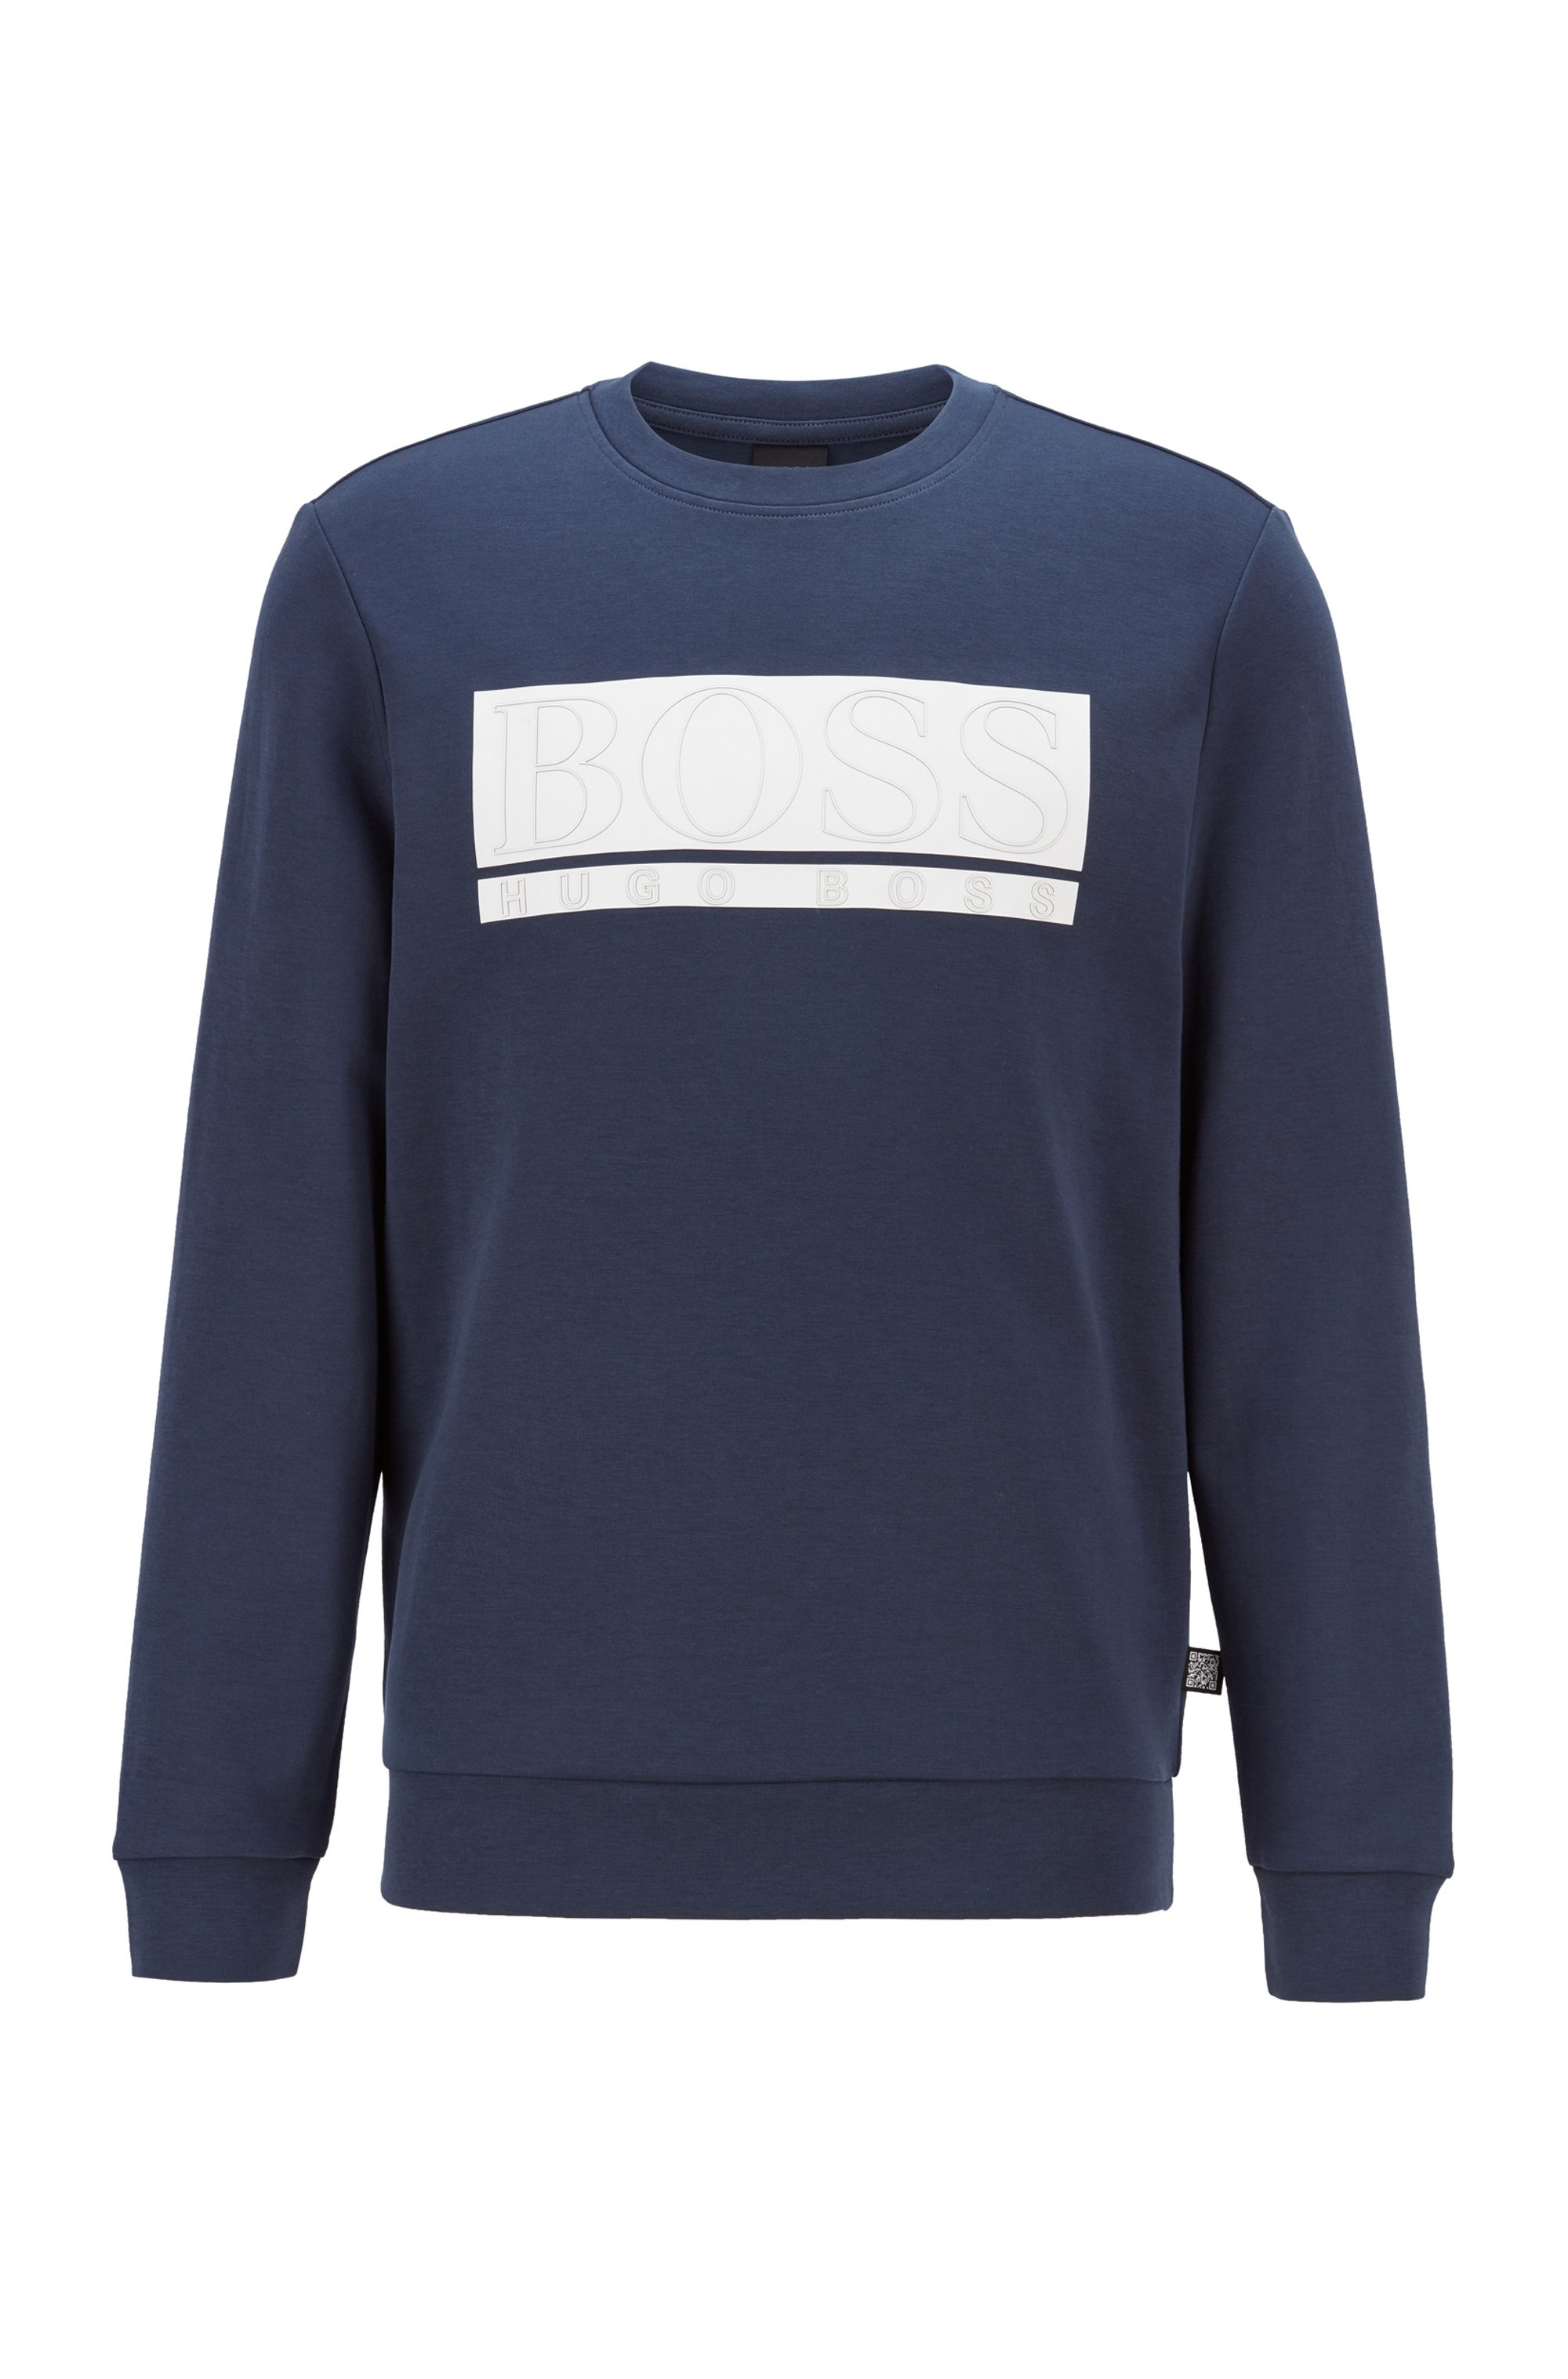 Slim-fit sweatshirt in interlock fabric with block logo, Dark Blue